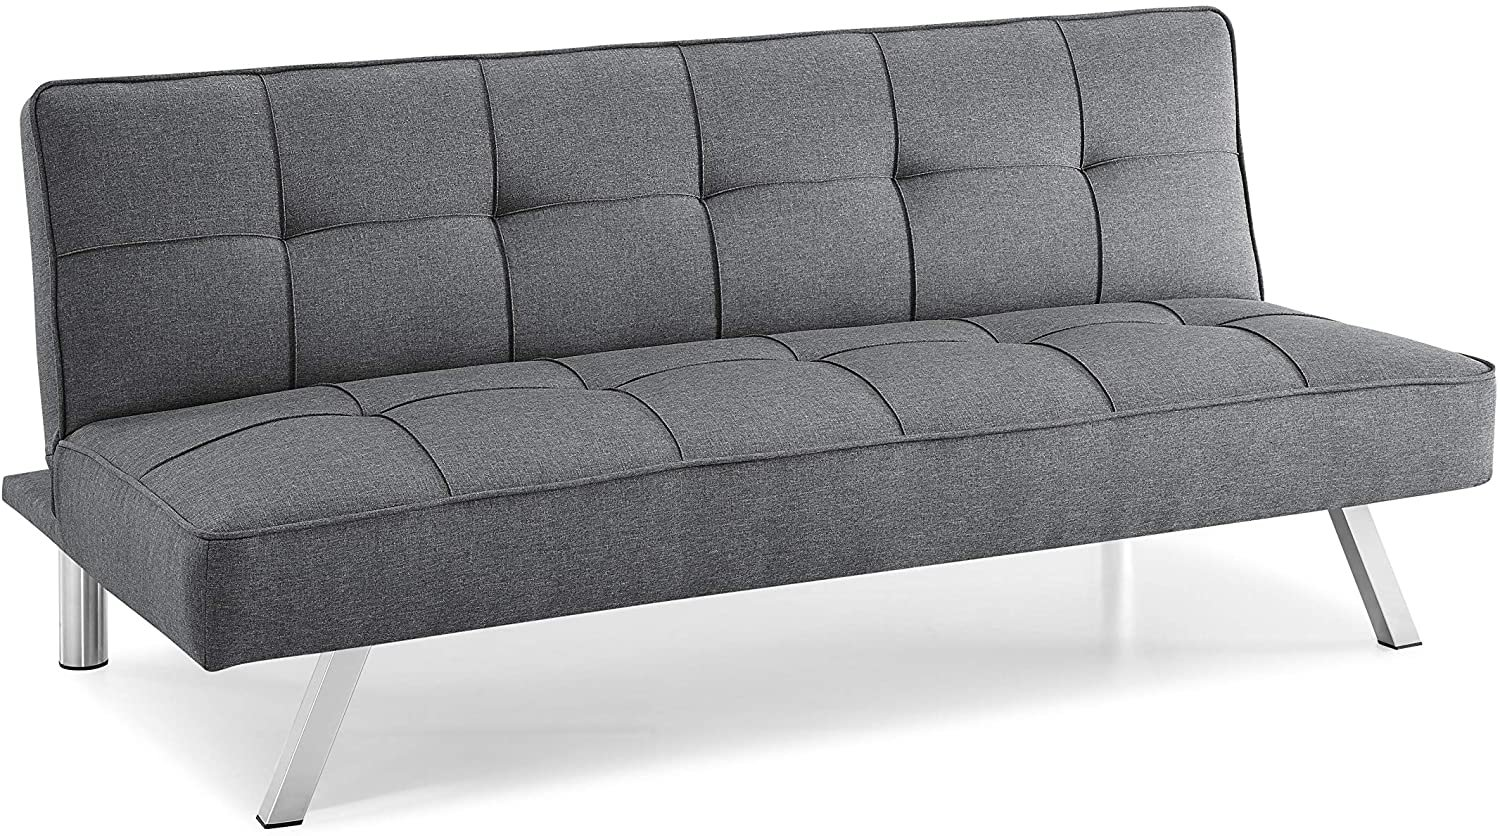 Pearington Multifunctional Convertible Sofa, Couch, Lounger, Bed-Durable Grey